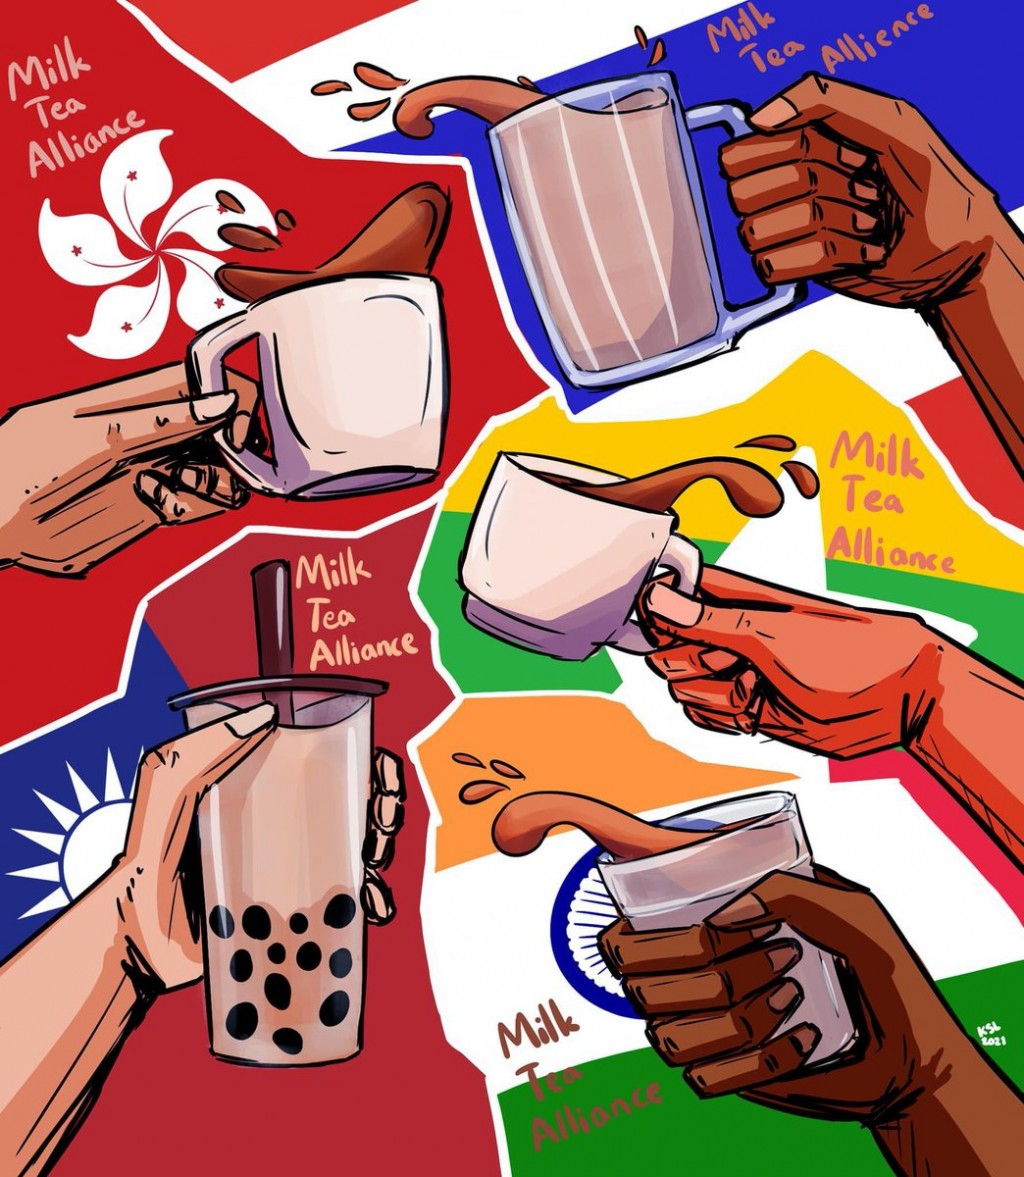 Milk Tea Alliance brews trouble for China